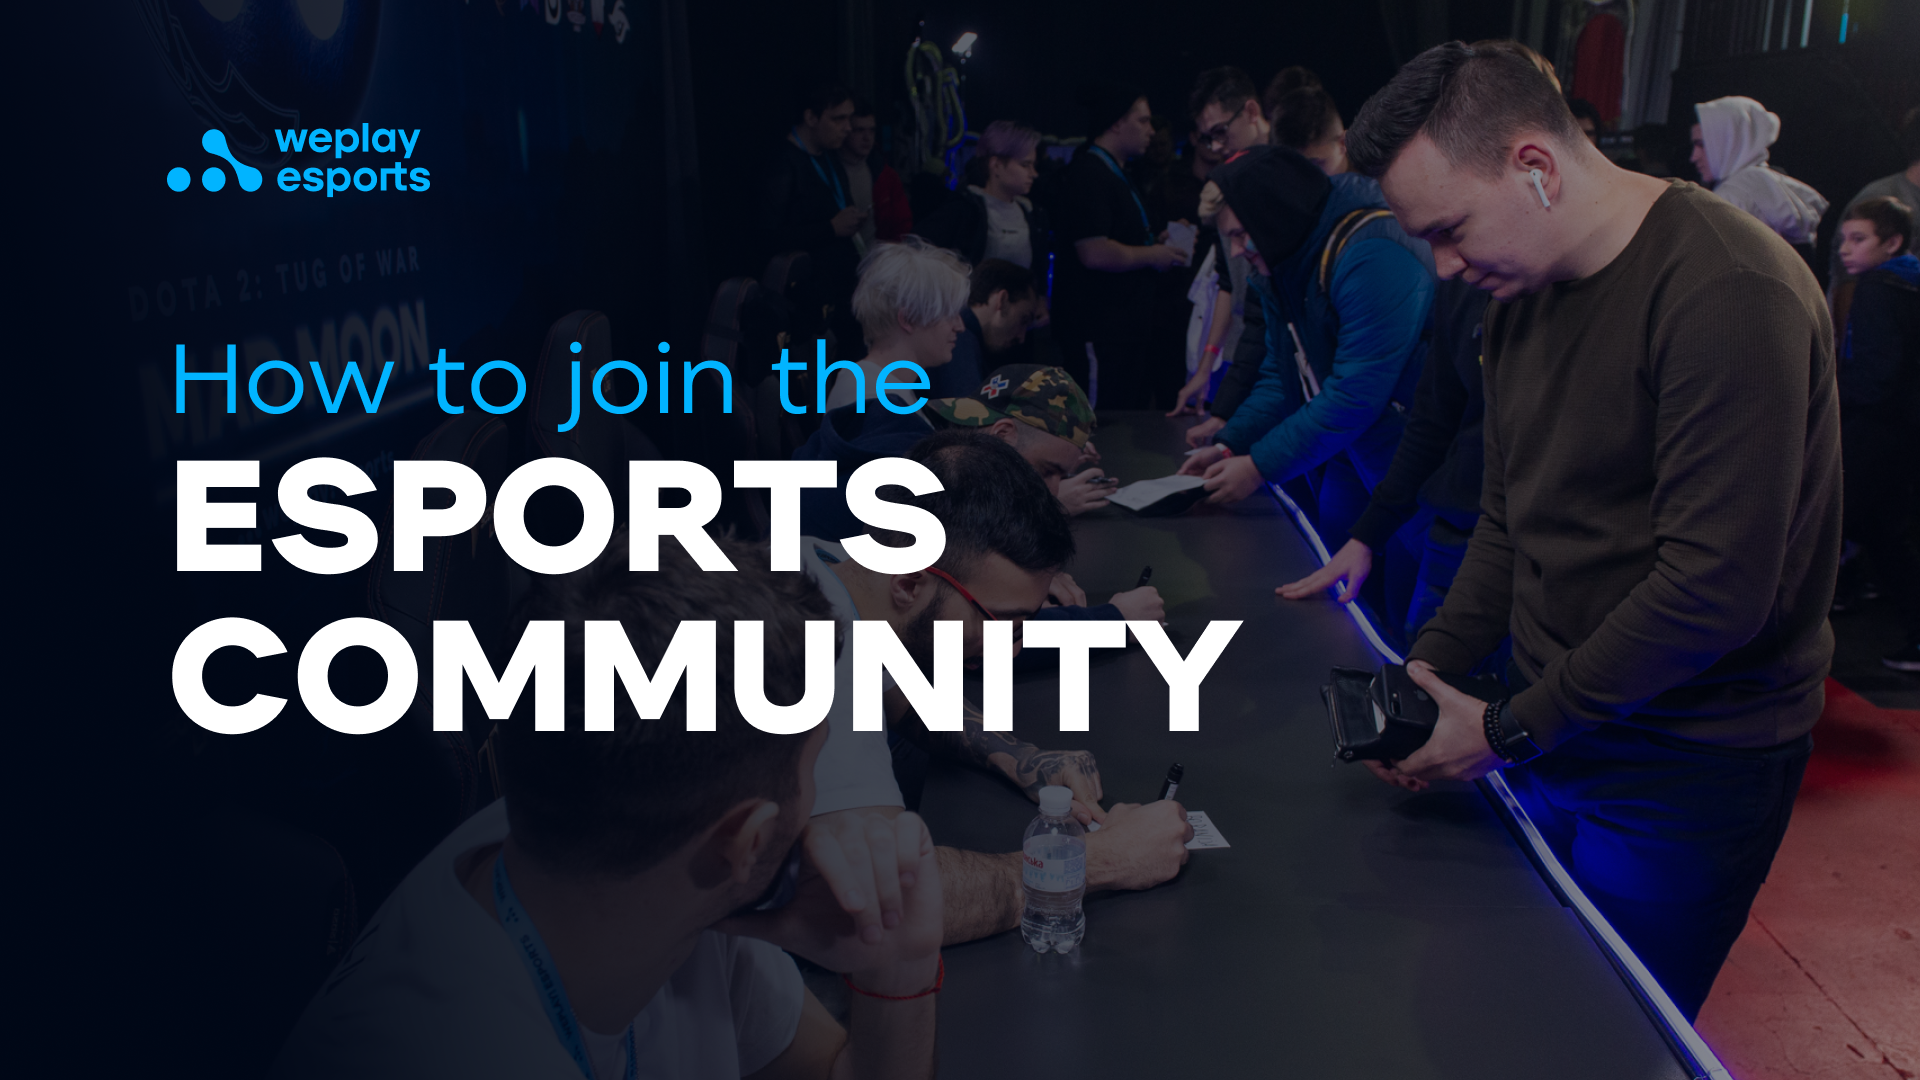 How to join an esport community